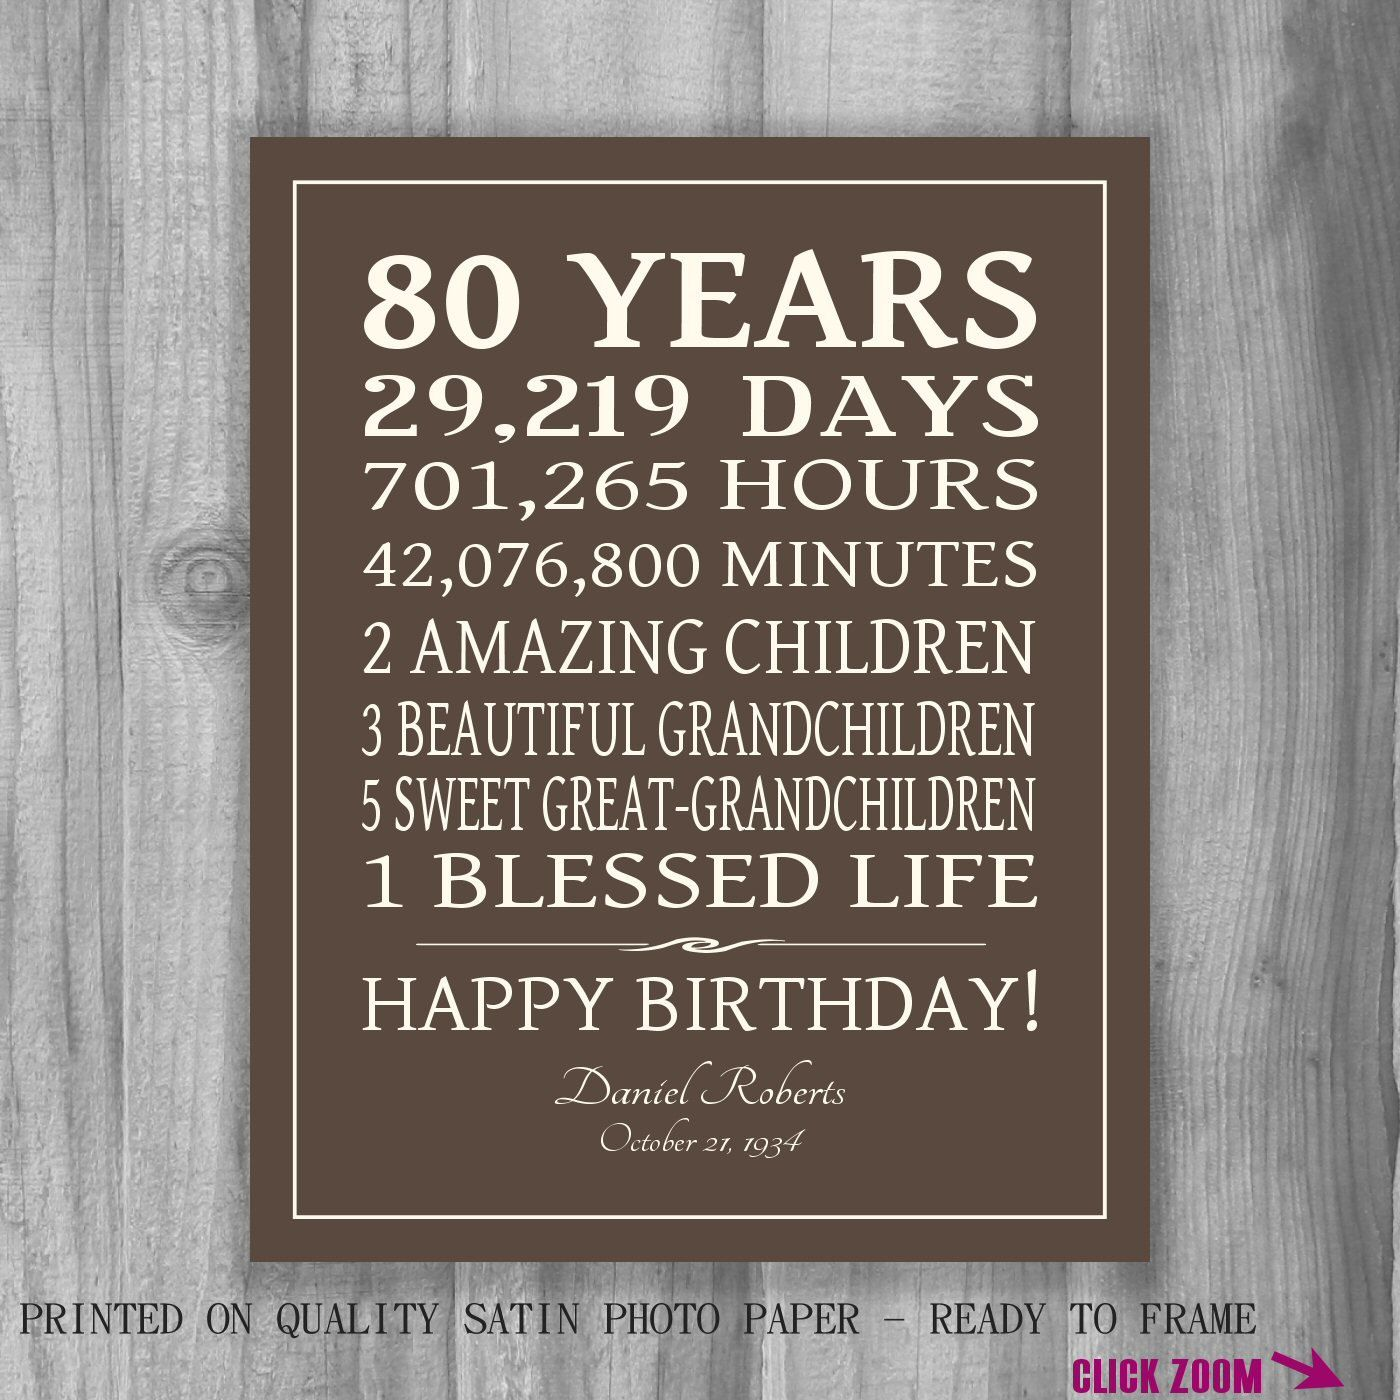 Ideas For 80 Year Old Birthday Party 80th BIRTHDAY GIFT Sign Print Personalized Art Mom Dad Grandma Best Friend Or Digital